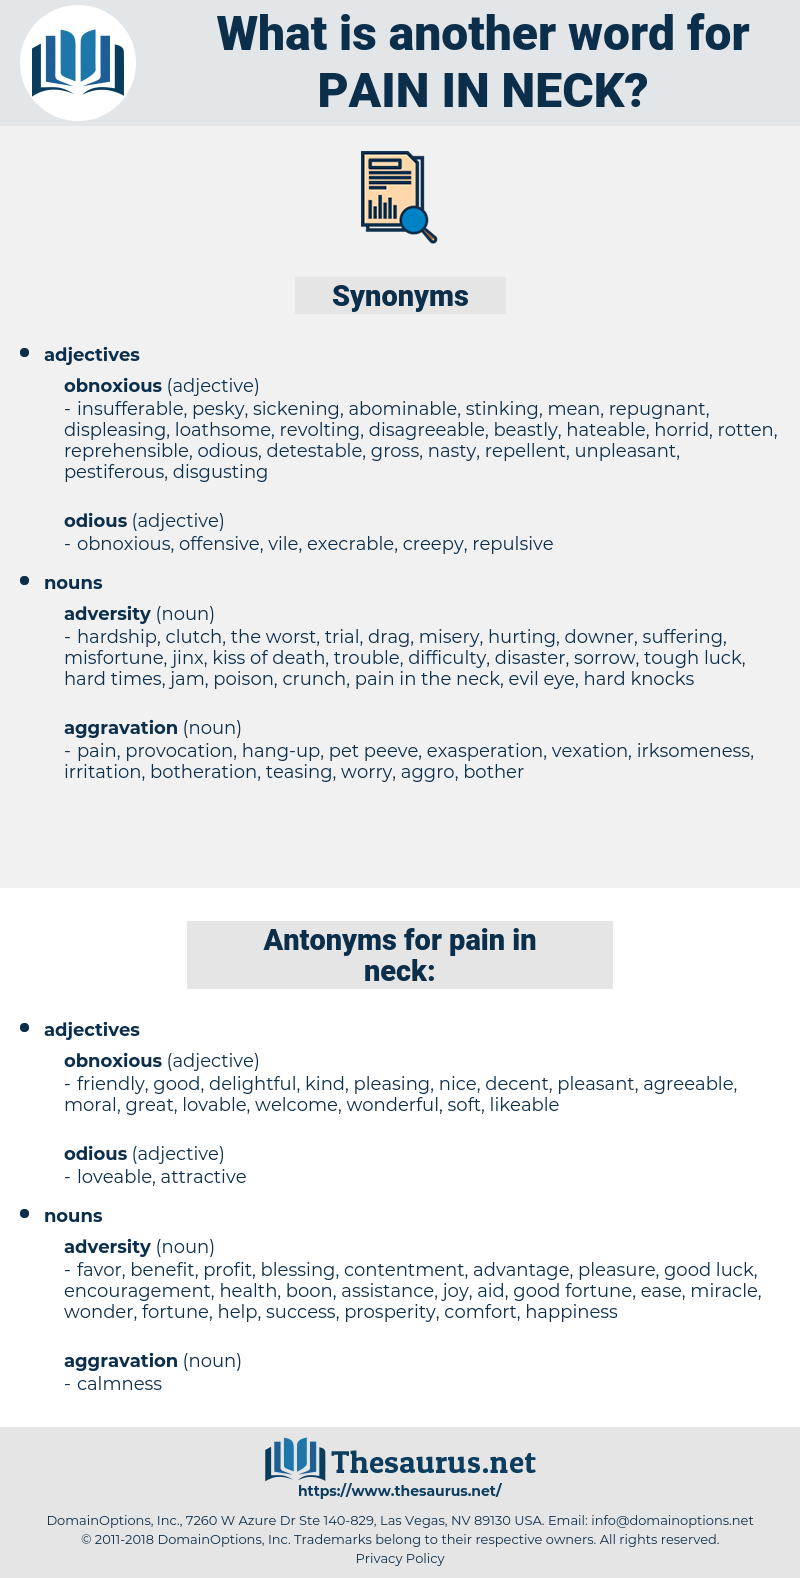 pain in neck, synonym pain in neck, another word for pain in neck, words like pain in neck, thesaurus pain in neck